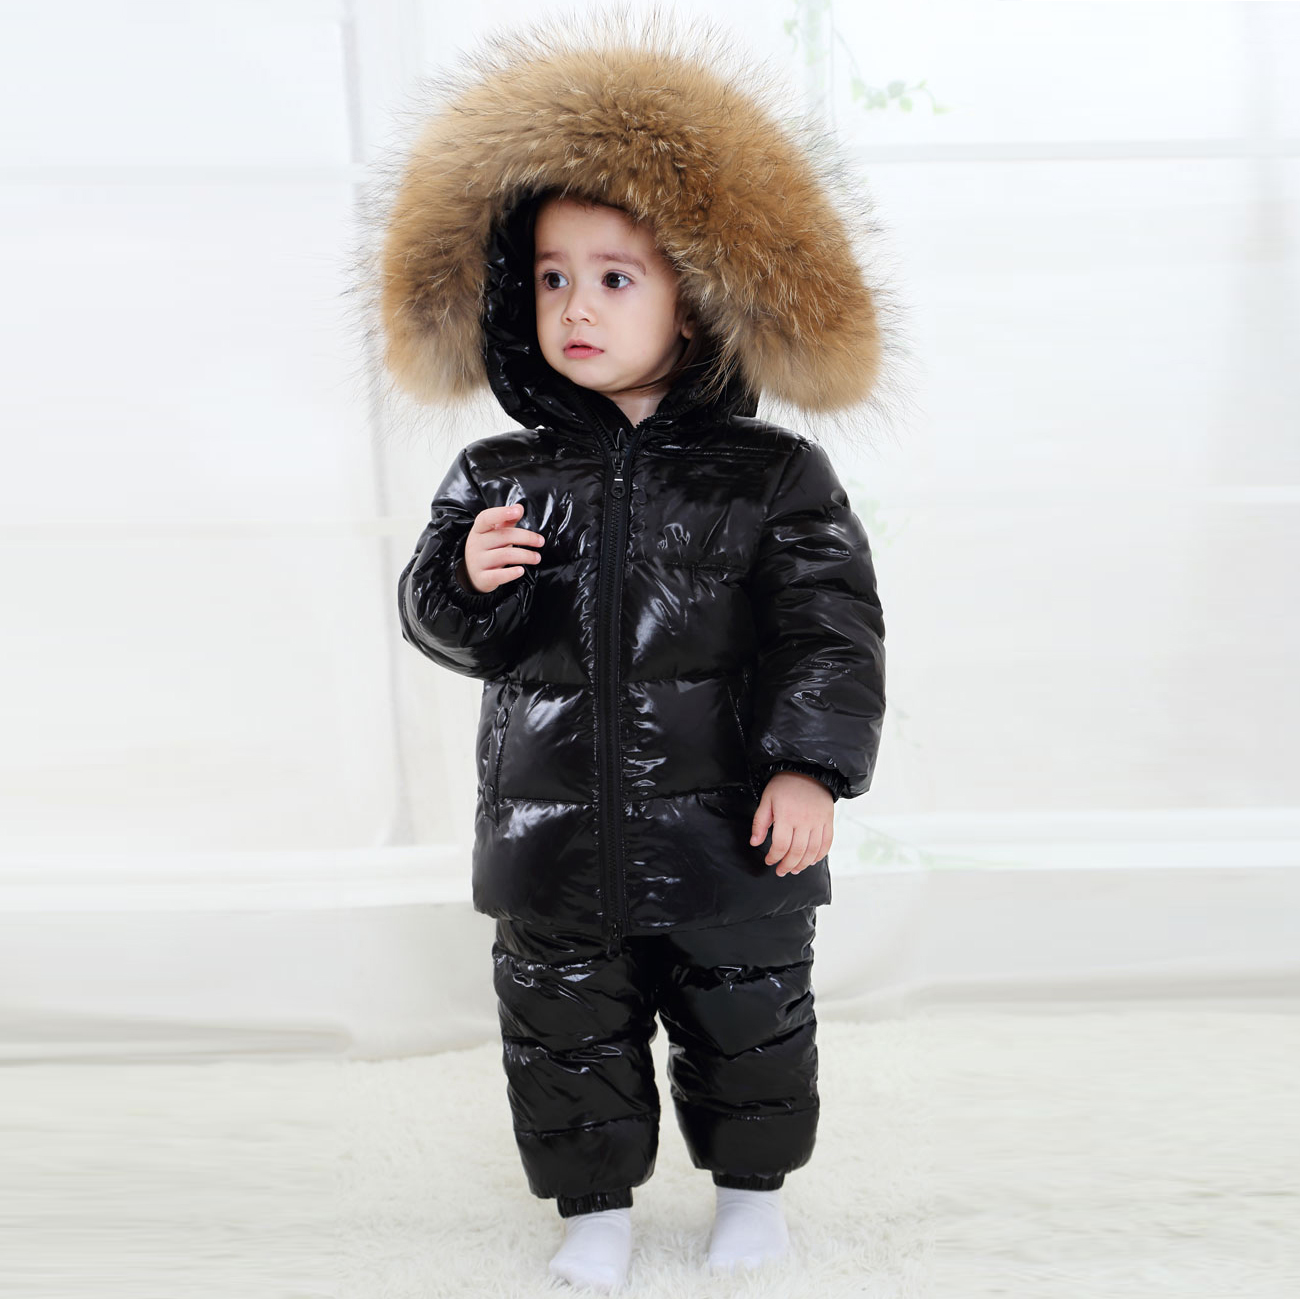 2018 New Children's Clothing Set Russia Winter Thicken Snowsuit 2-6y Boys 90% White Duck Down Clothes Girls Winter Outfit Jacket